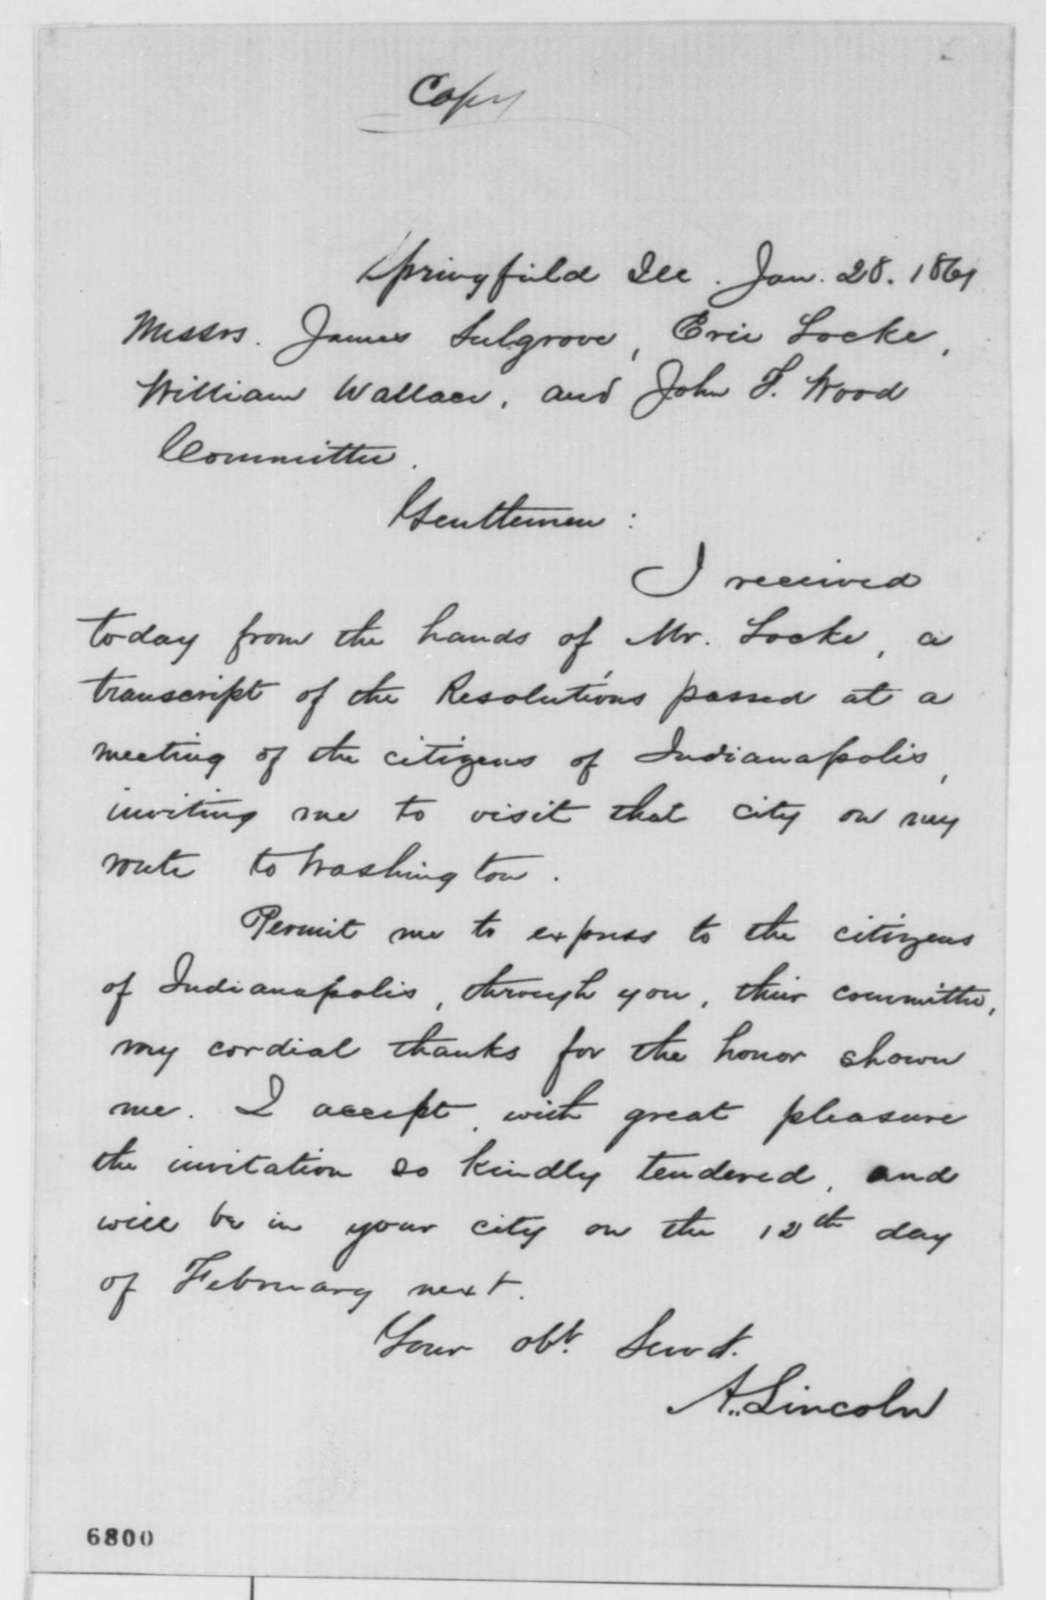 Abraham Lincoln to James Sulgrove, Eric Locke, William Wallace and John F. Wood, Monday, January 28, 1861  (Reply to invitation)